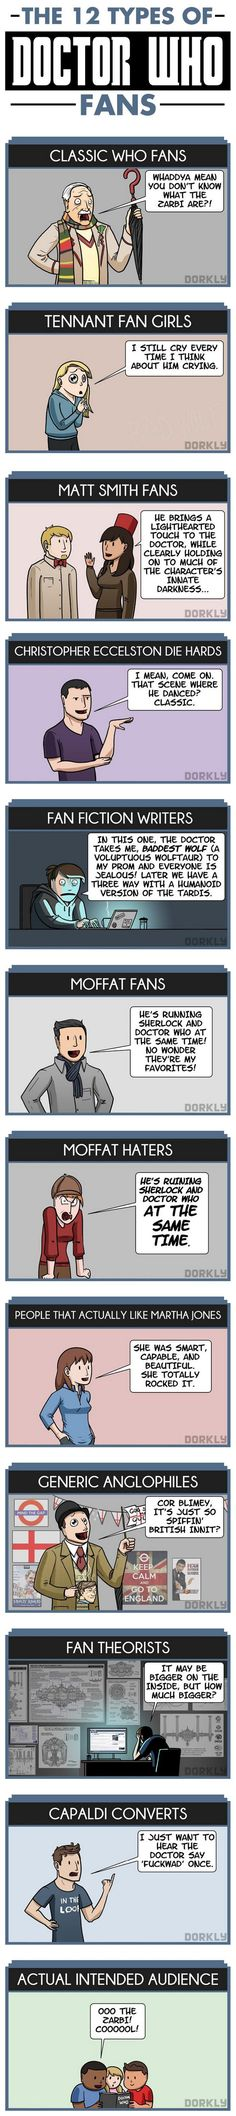 The 12 Types of Doctor Who Fans. I'm 5 of them: Tennant Fan Girl, Christopher Eccelston Die Hard, Moffat Fan, Moffat Hater, and Capaldi Convert.